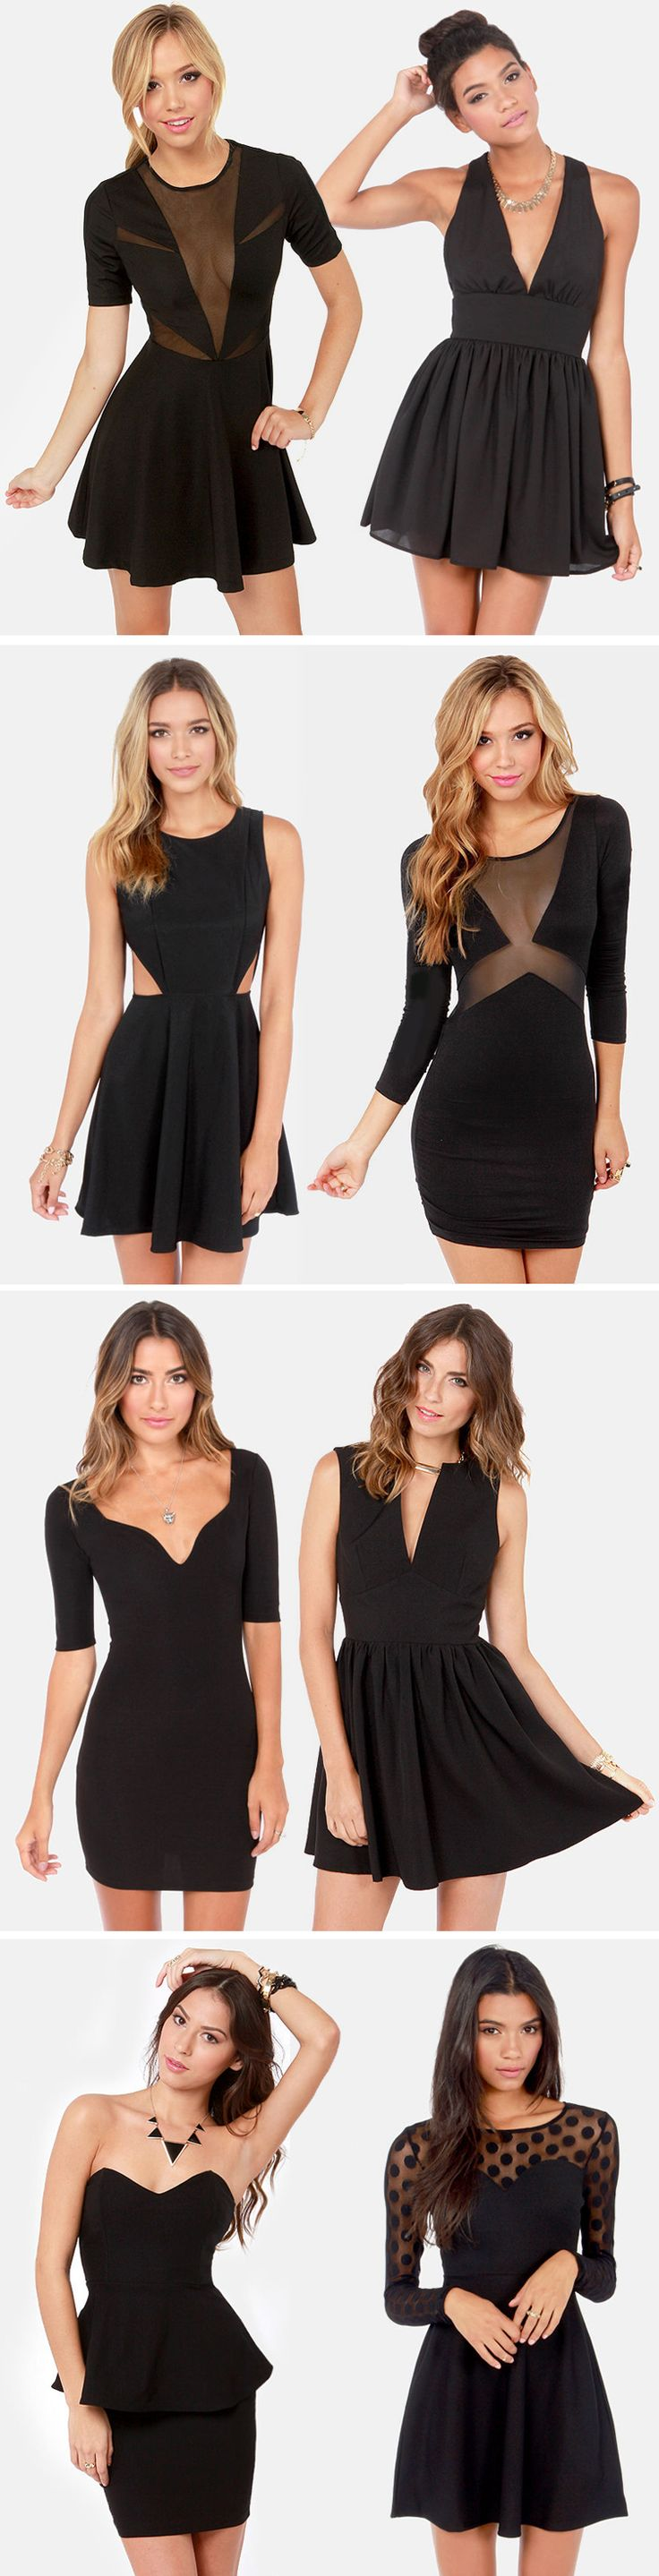 Black dress for party - Everyone Needs A Lbd For Holiday Parties Lulus Holidaywear Black Party Dresses